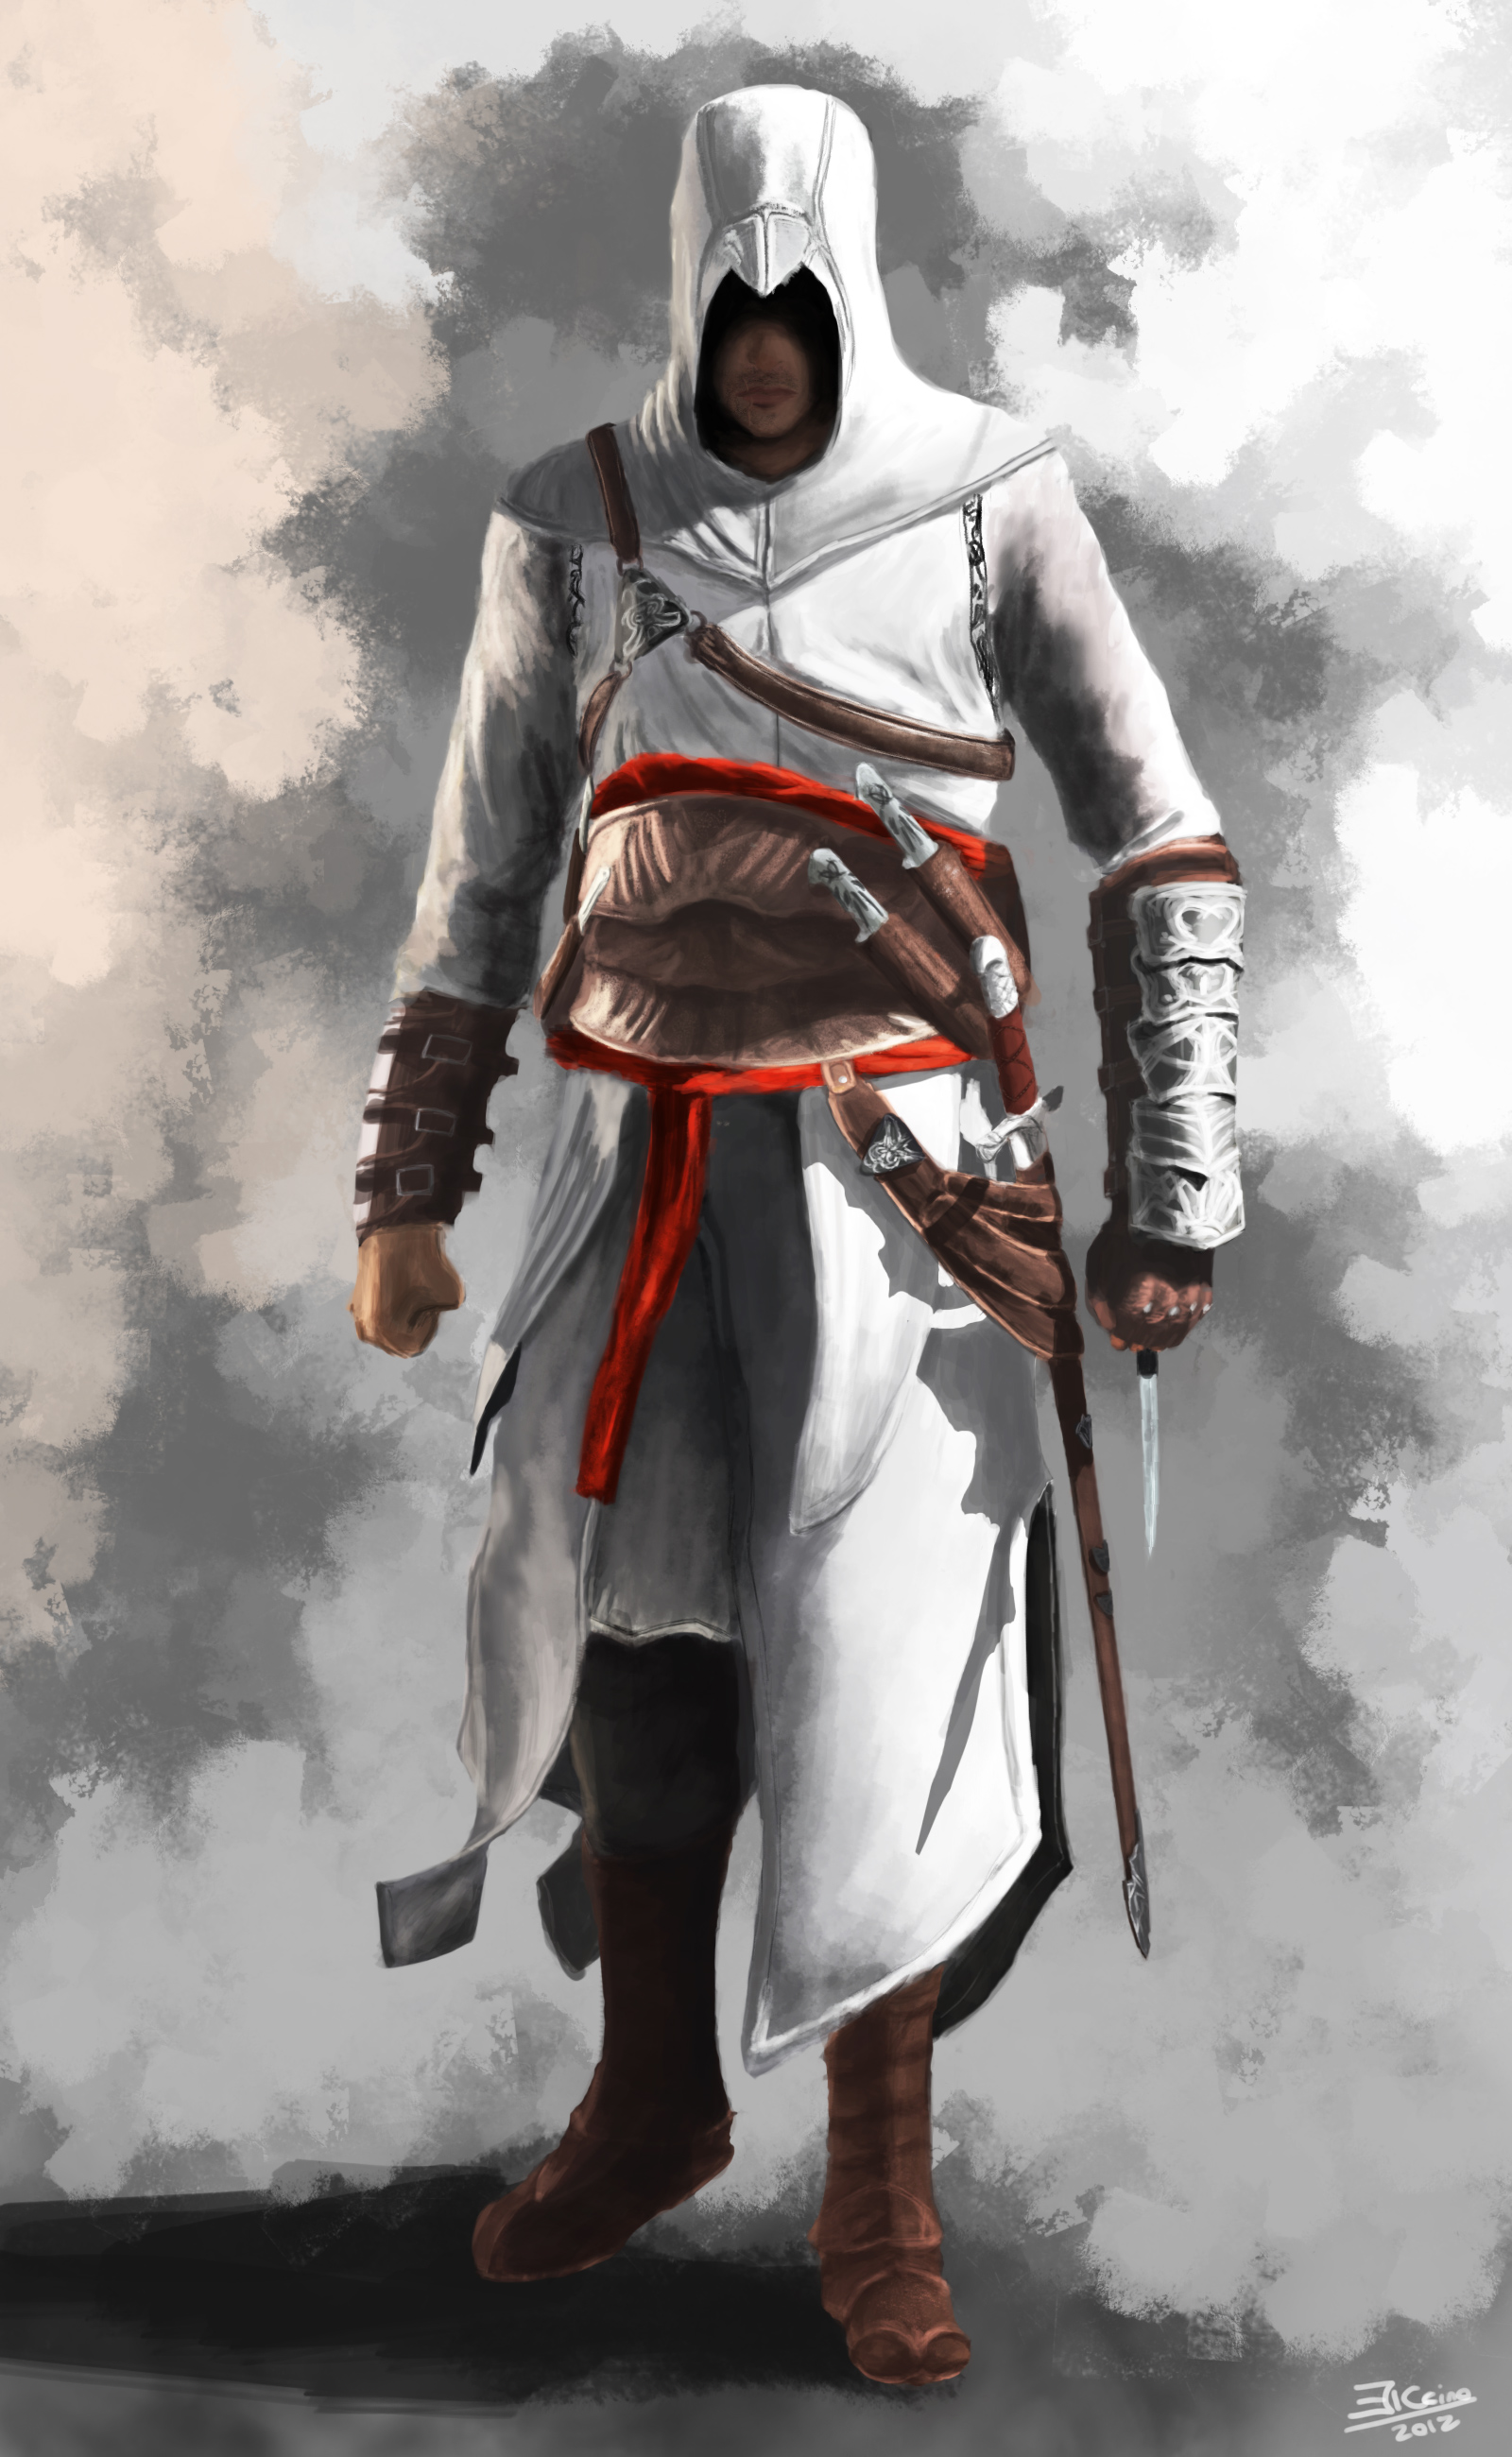 Assassin's Creed Altair by XinoMetal on DeviantArt